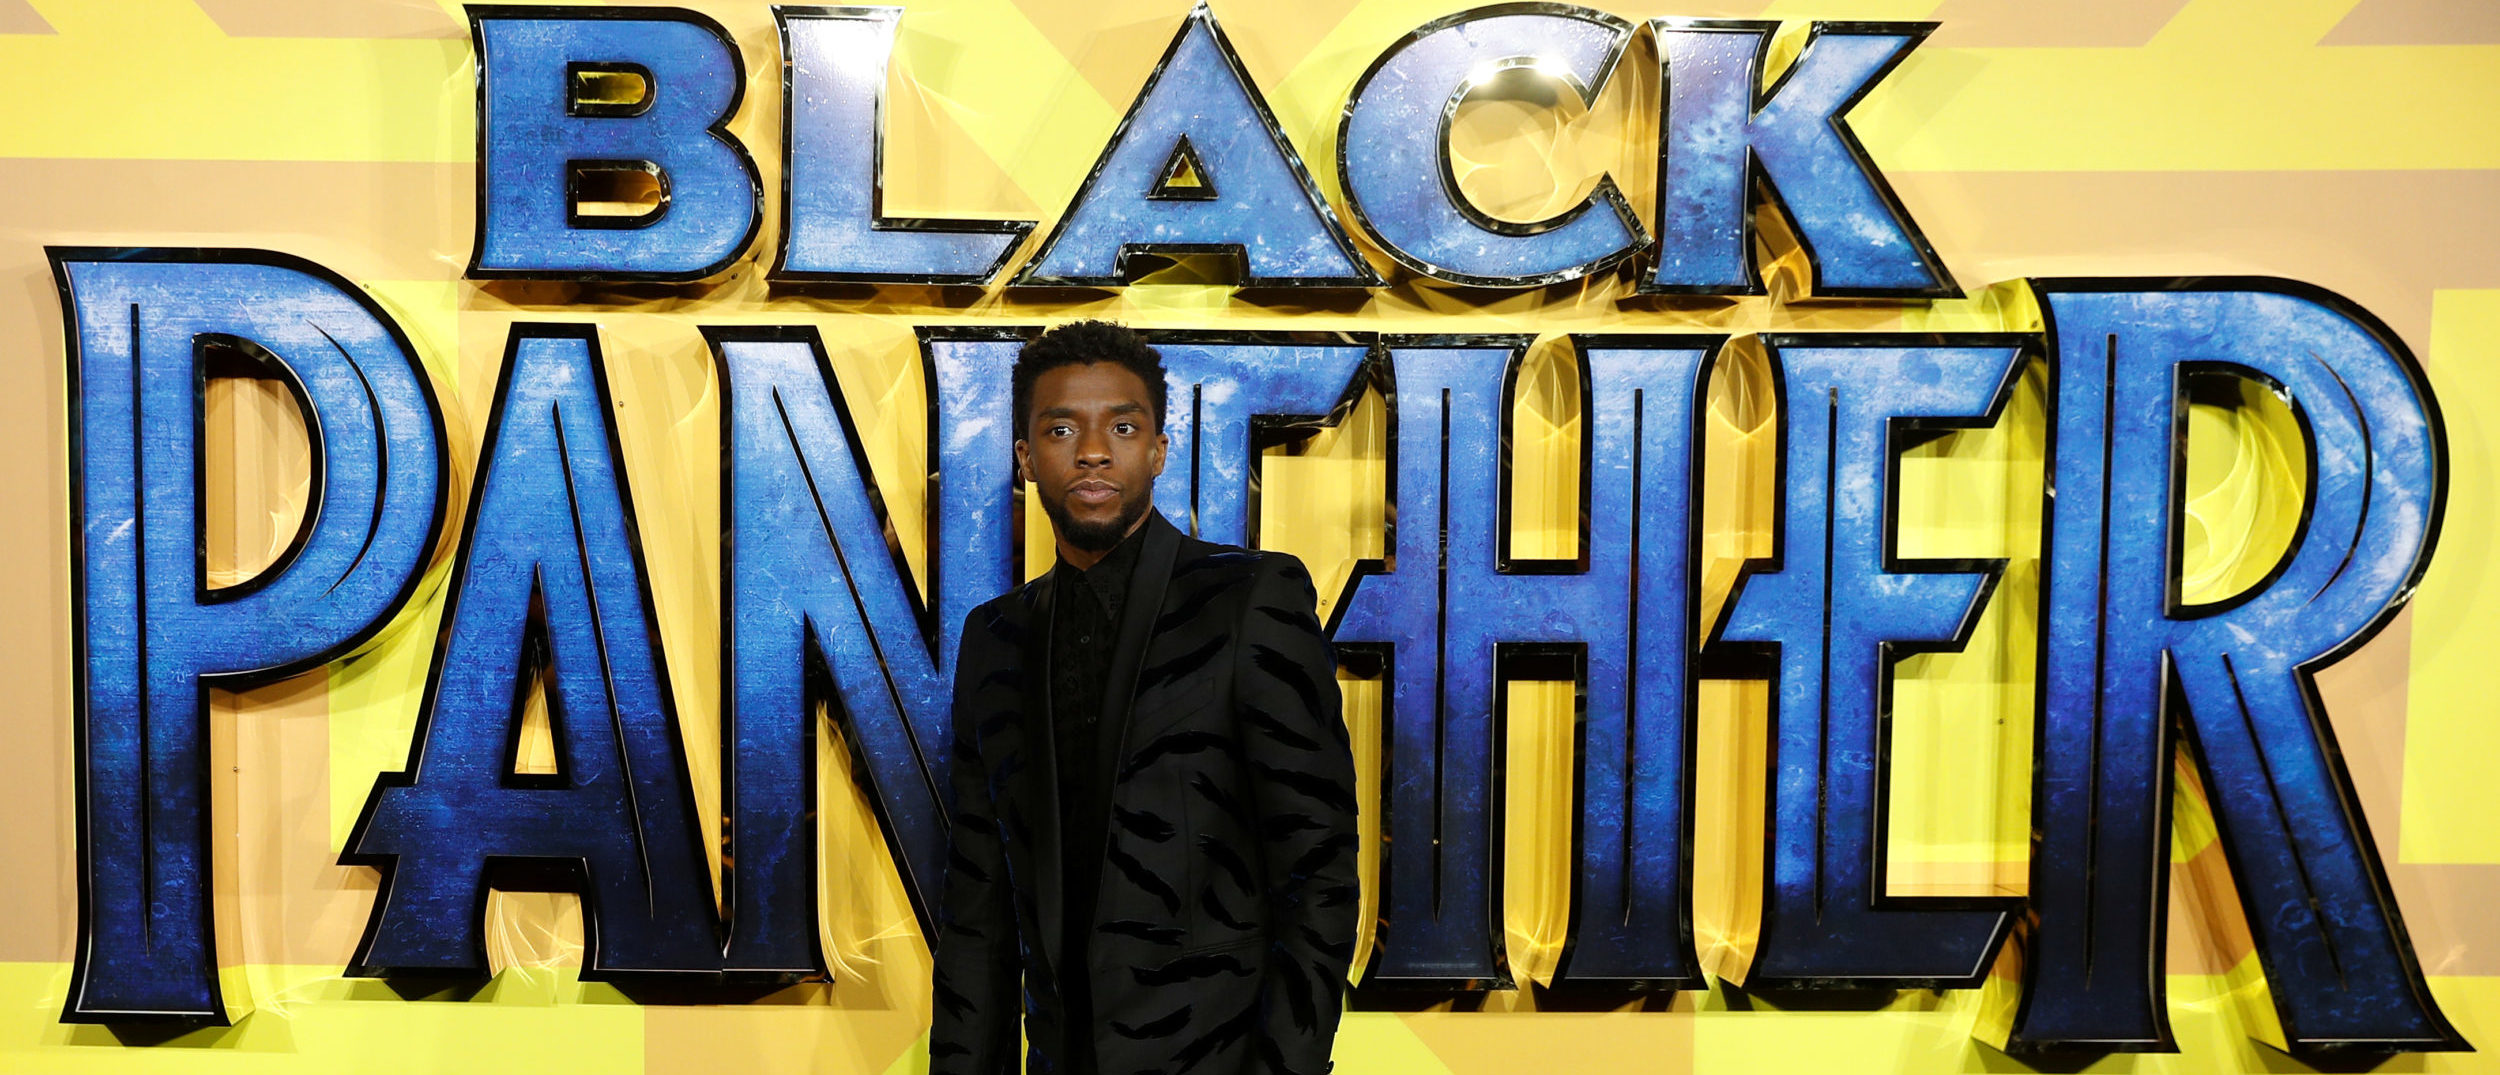 "Actor Chadwick Boseman arrives at the premiere of the new Marvel superhero film ""Black Panther"" in London, February 8, 2018. REUTERS/Peter Nicholls"